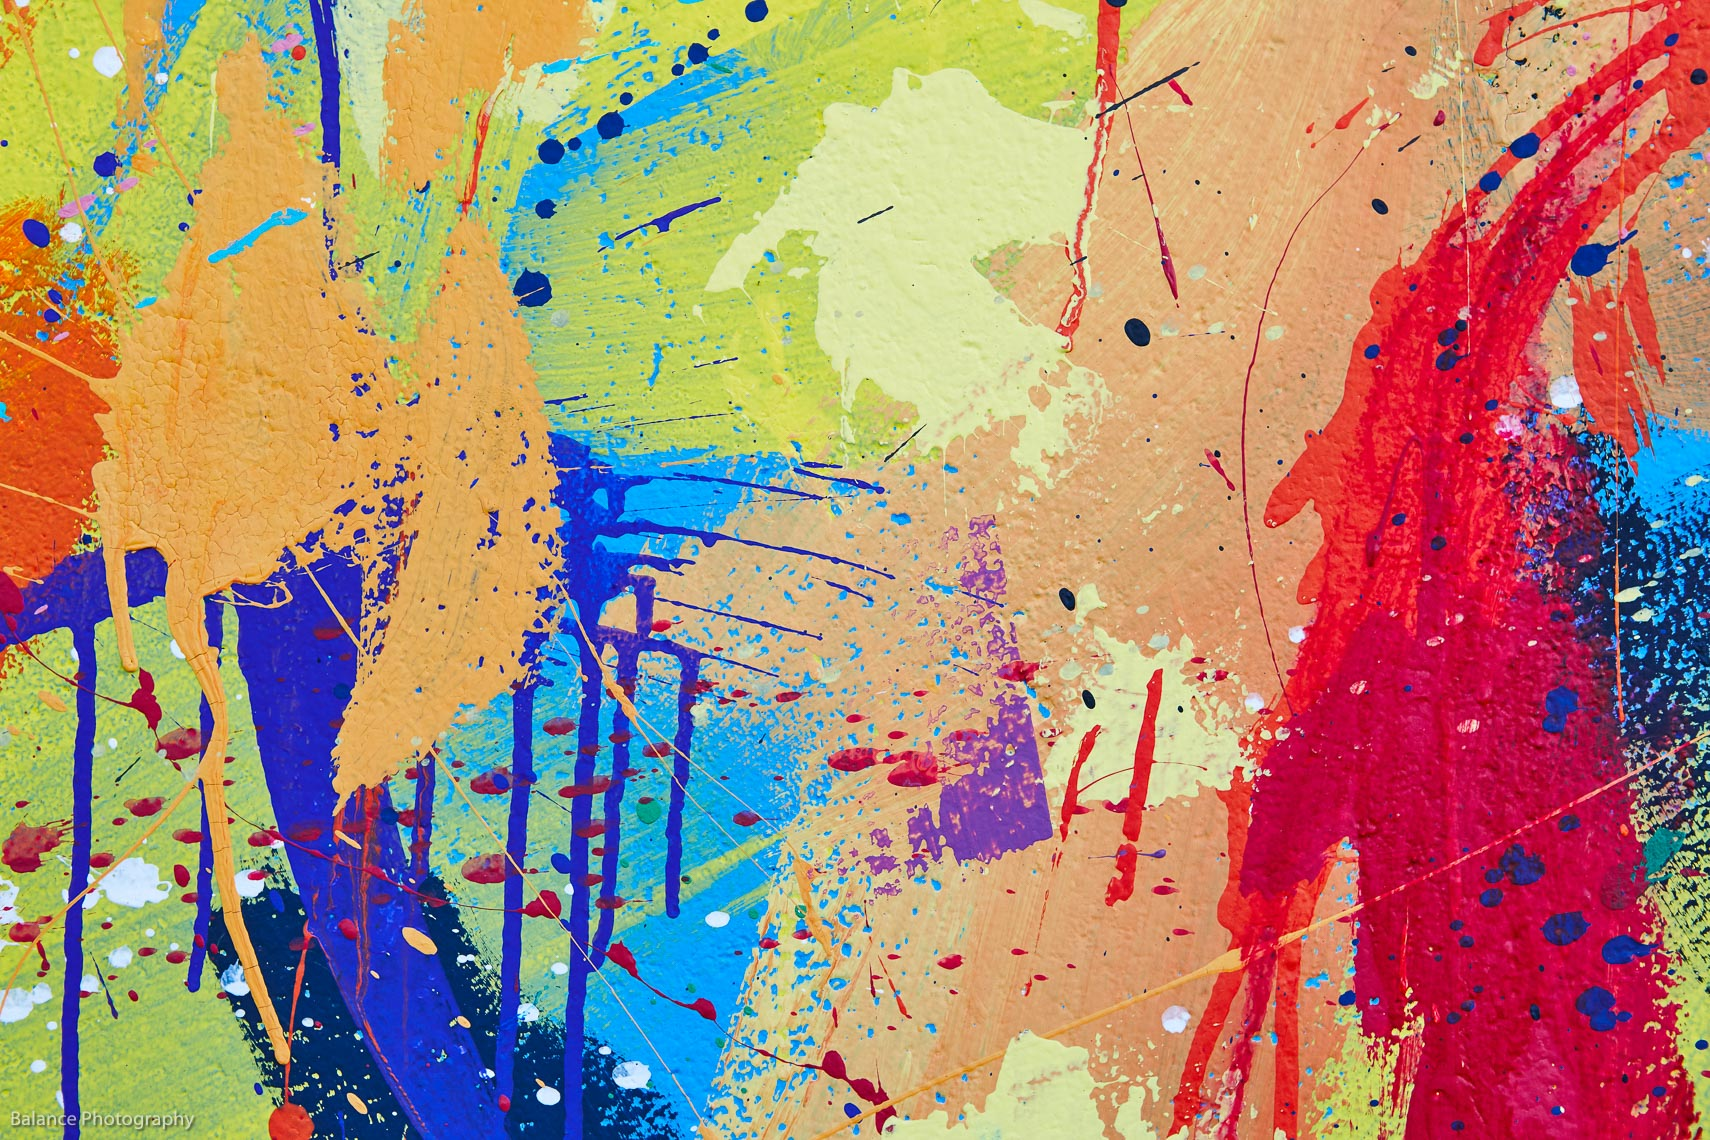 pf_multicolored-vivid-and-textured-gouache-abstract-PZADYLK